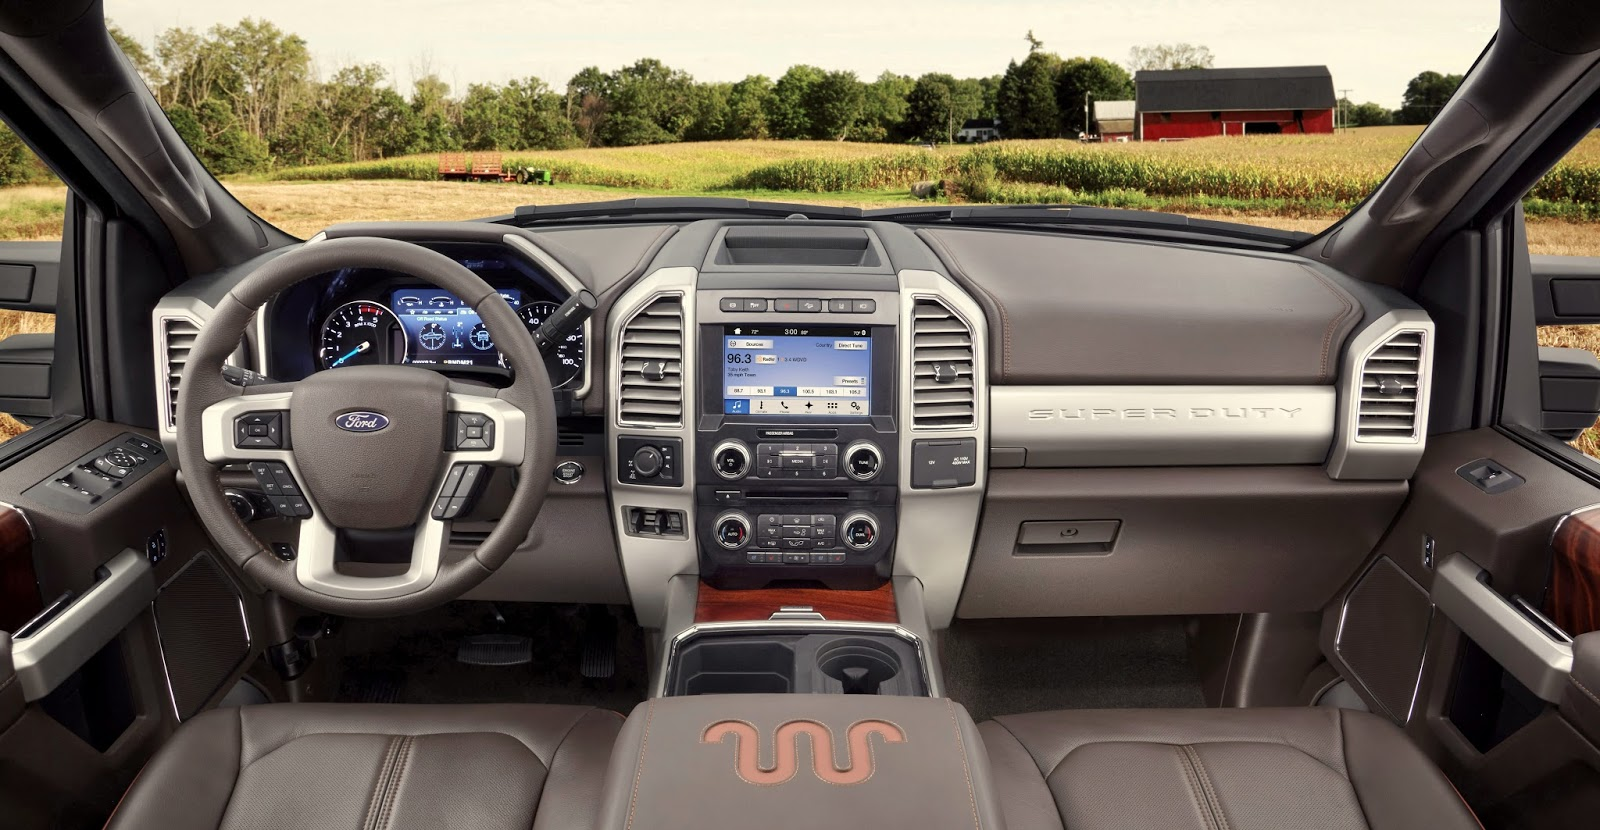 Ford brought its 2017 super duty f series trucks to the texas state fair for a first look at the heavy duty people and stuff mover with it s high strength